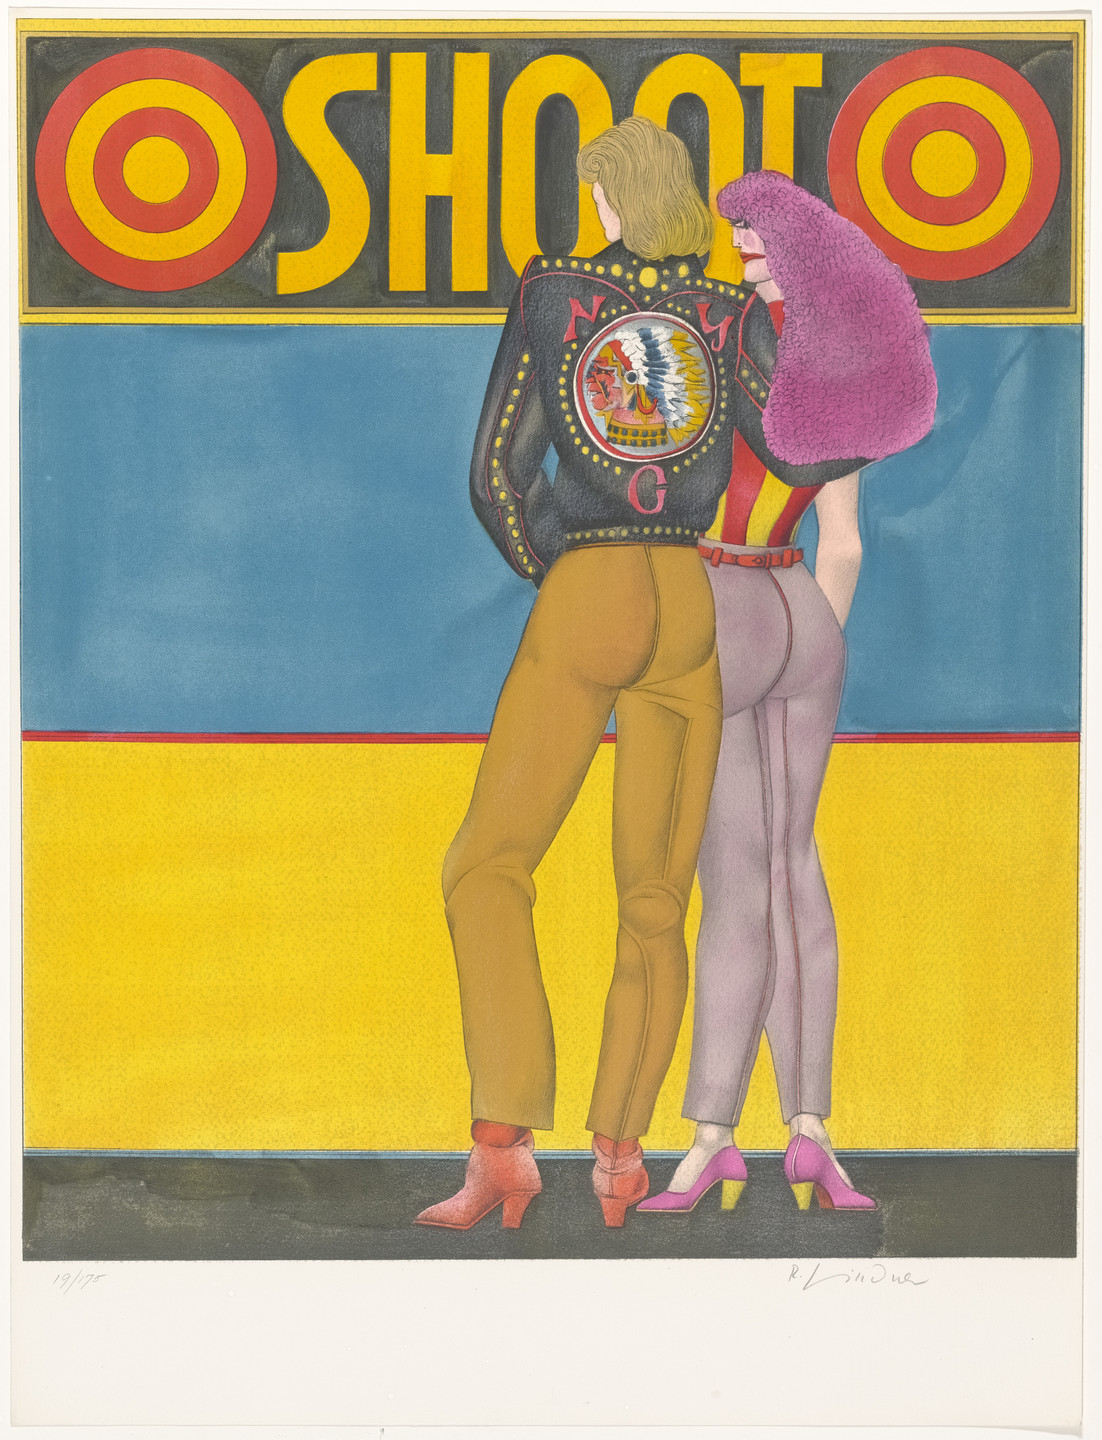 Richard Lindner. Shoot from Fun City. 1971